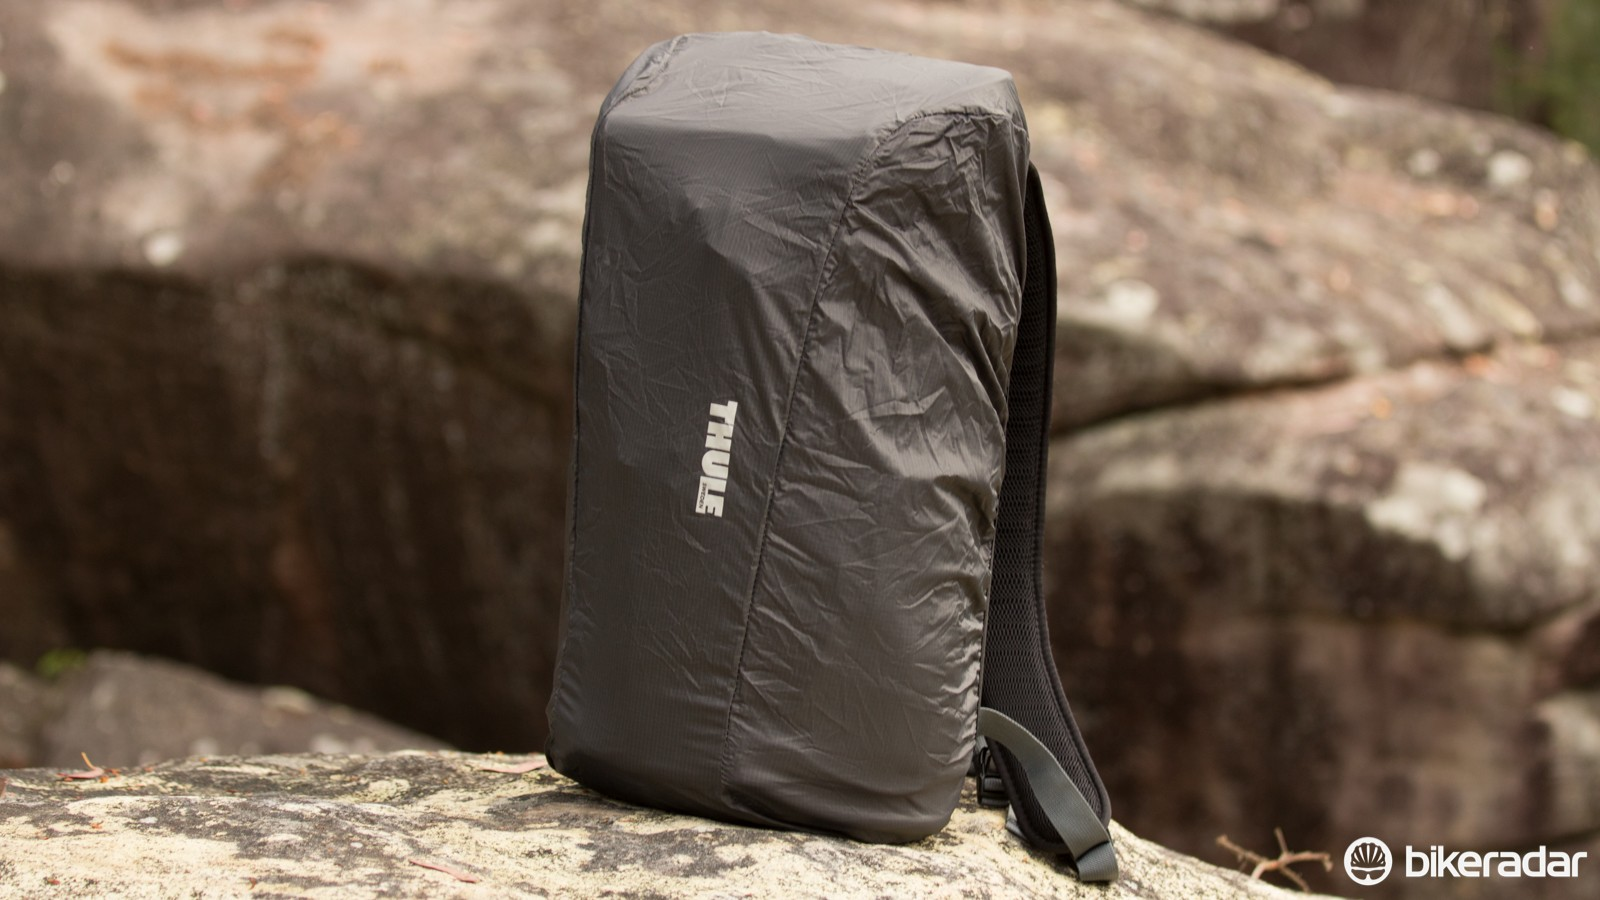 If the water-resistant material and zippers aren't enough in a downpour, there's an included rain cover too